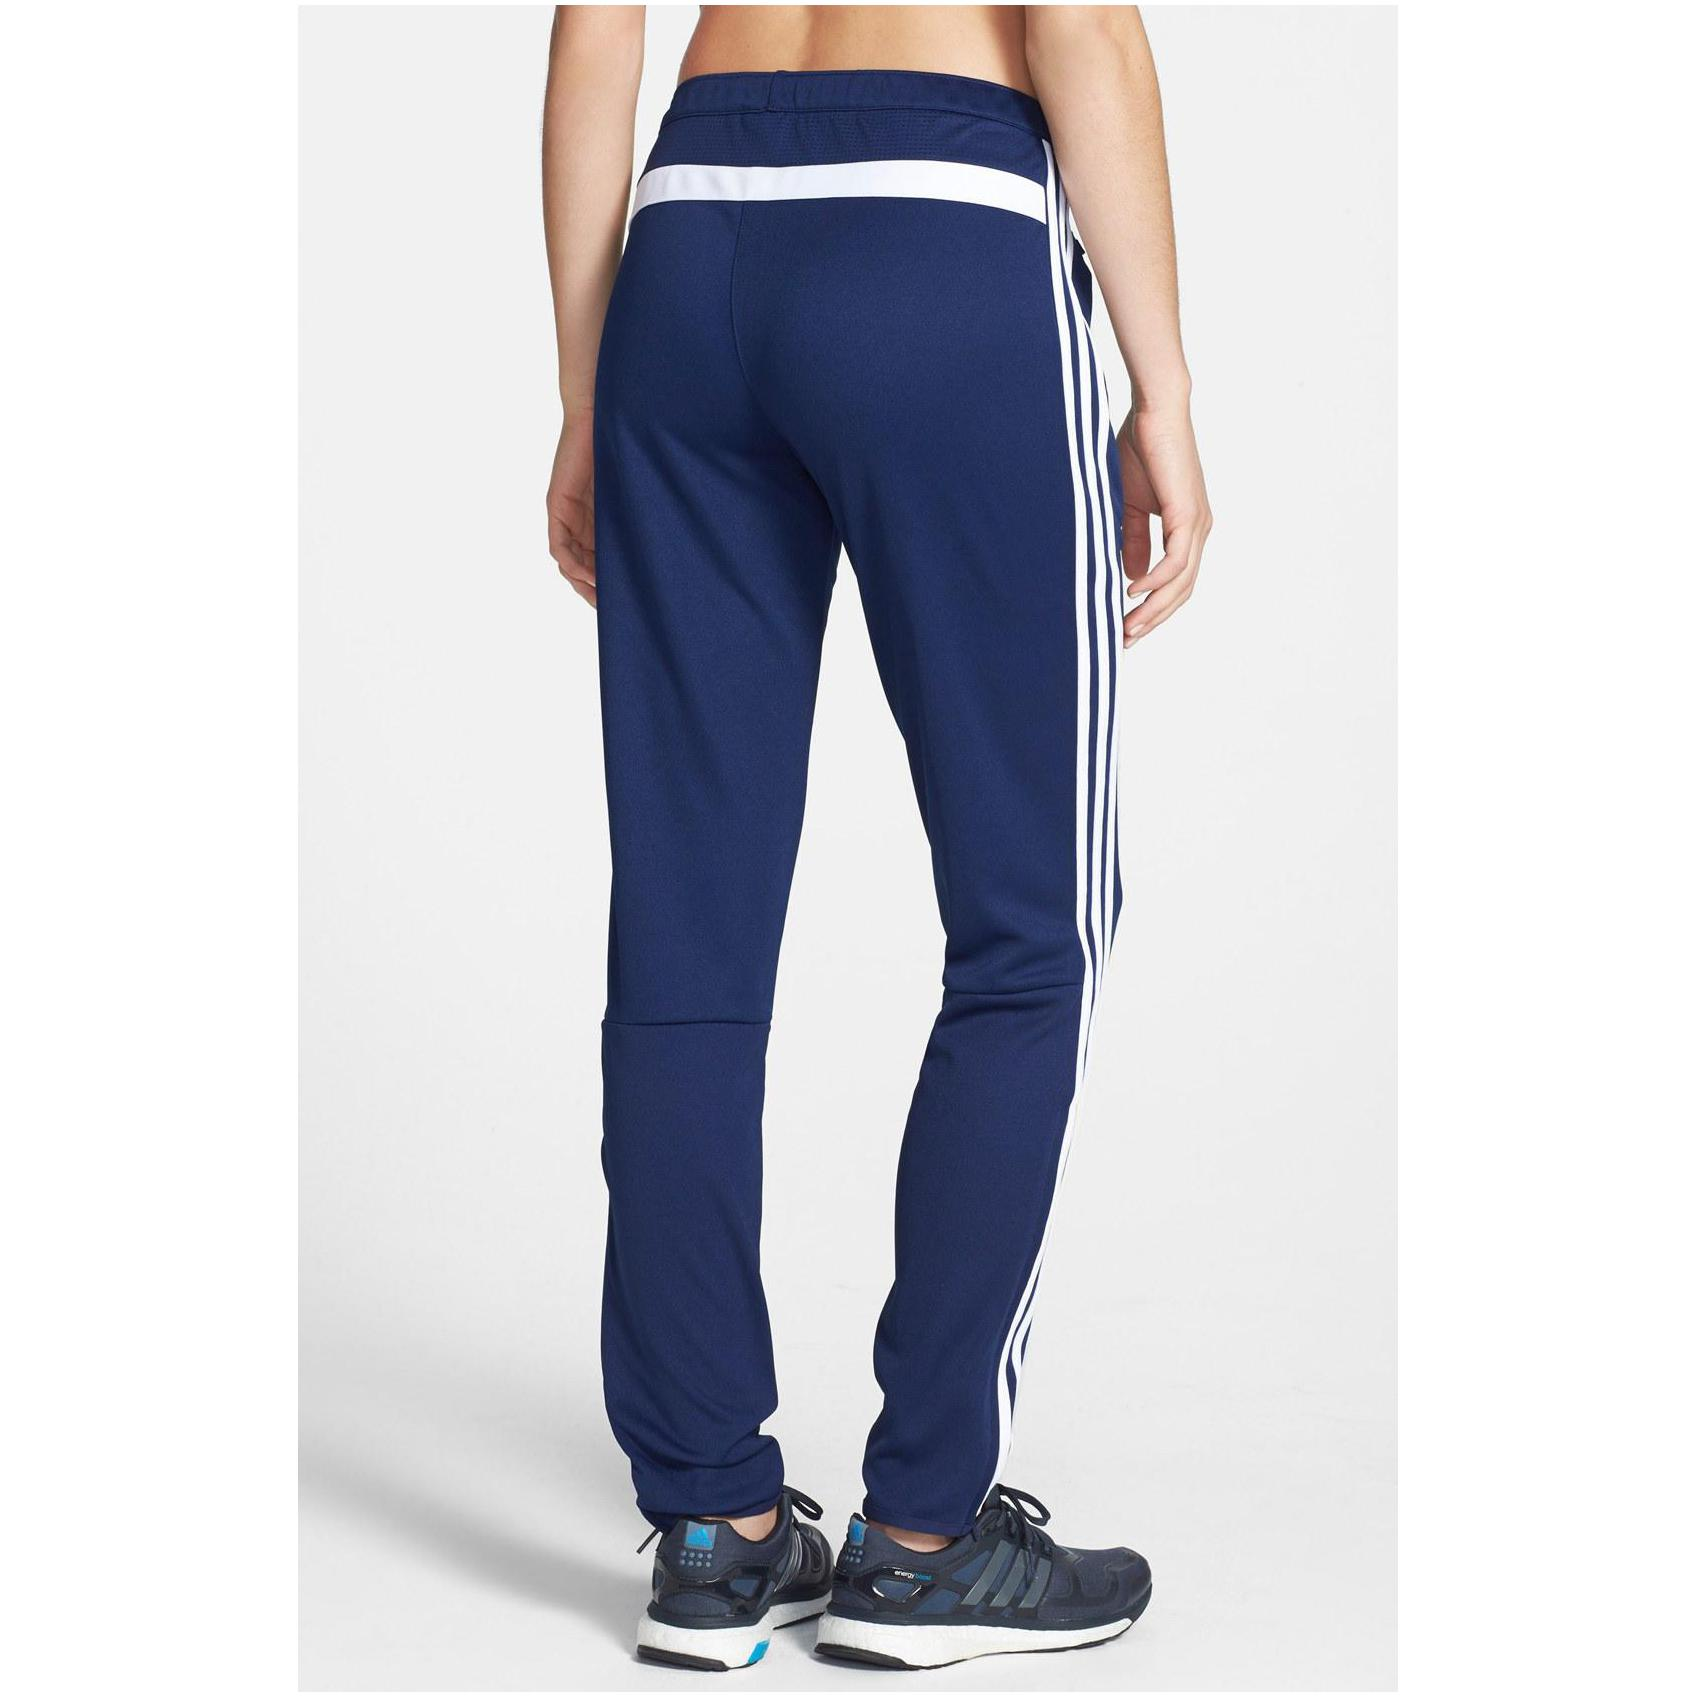 adidas tiro 13 training pants womens photo - 2